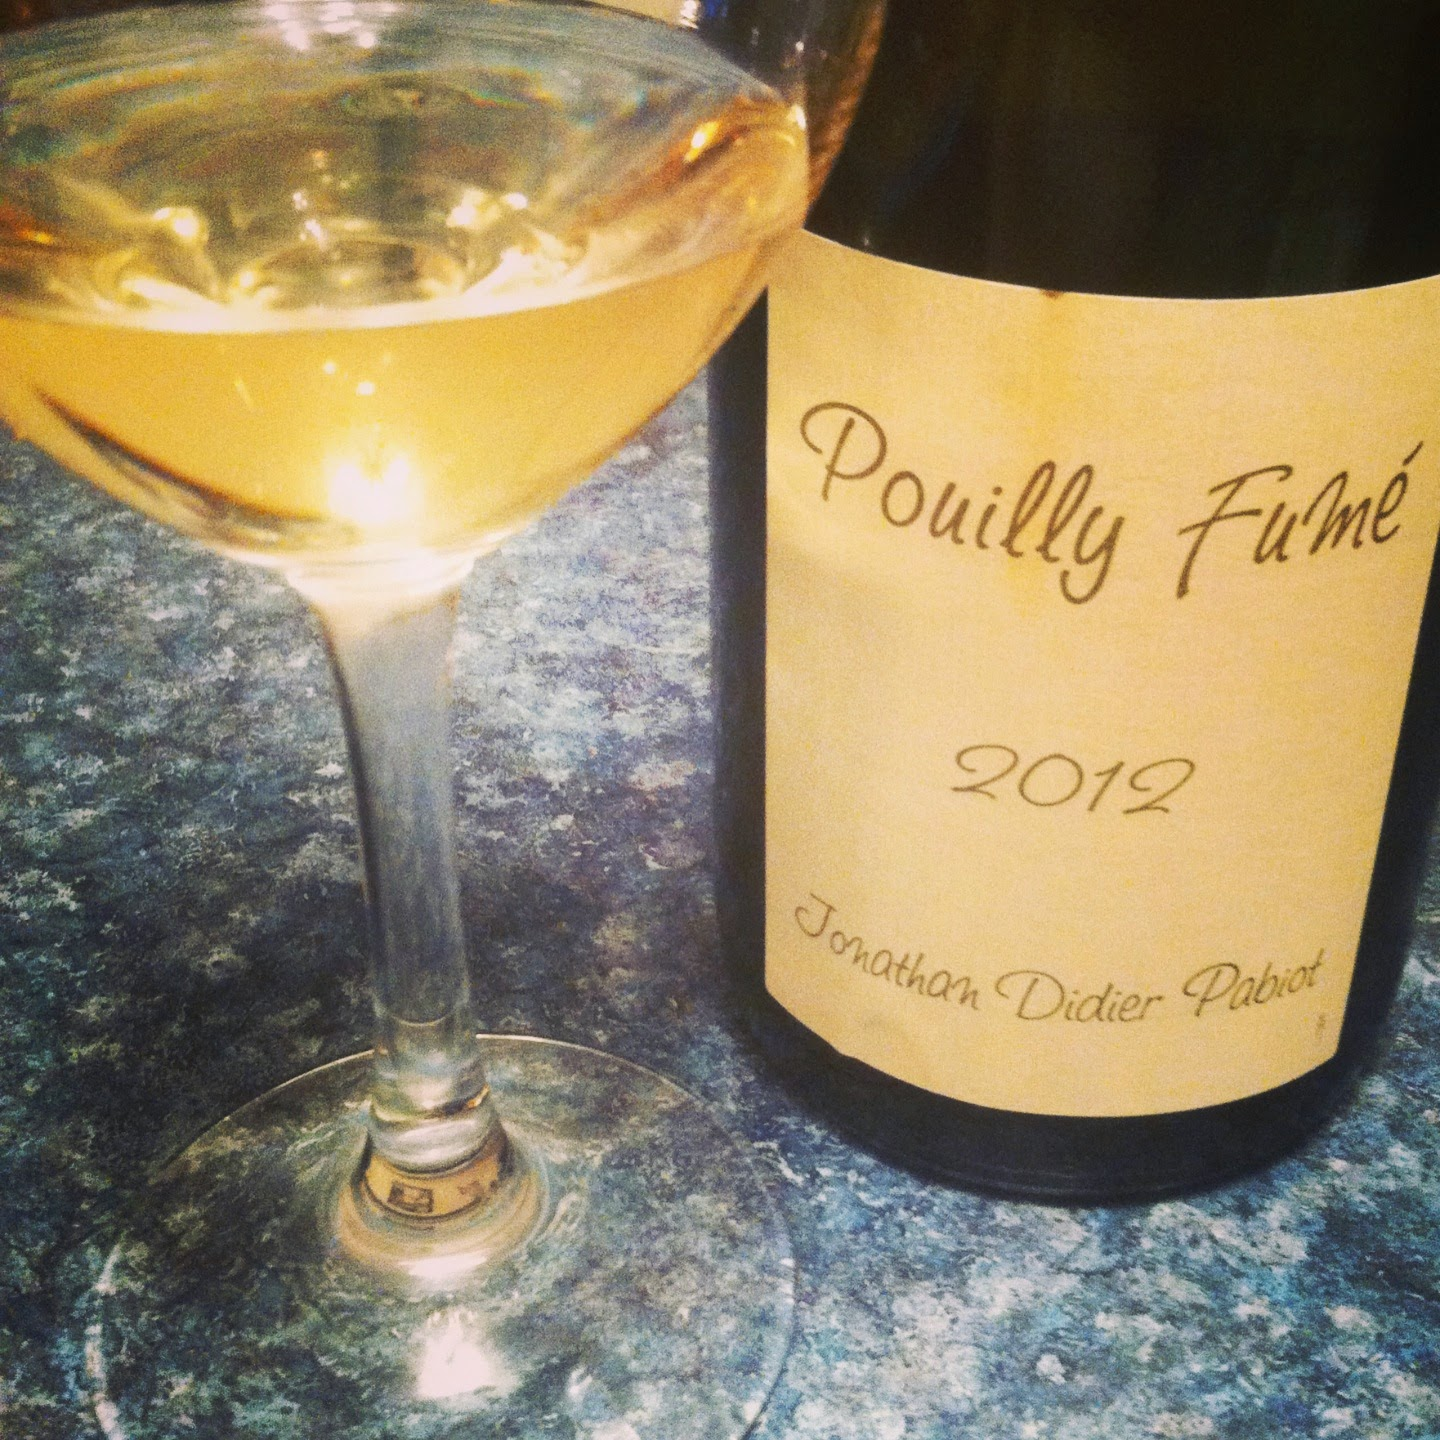 2012 Jonathan Didier Pabiot Pouilly Fumé is a nice expression of this type of #wine.